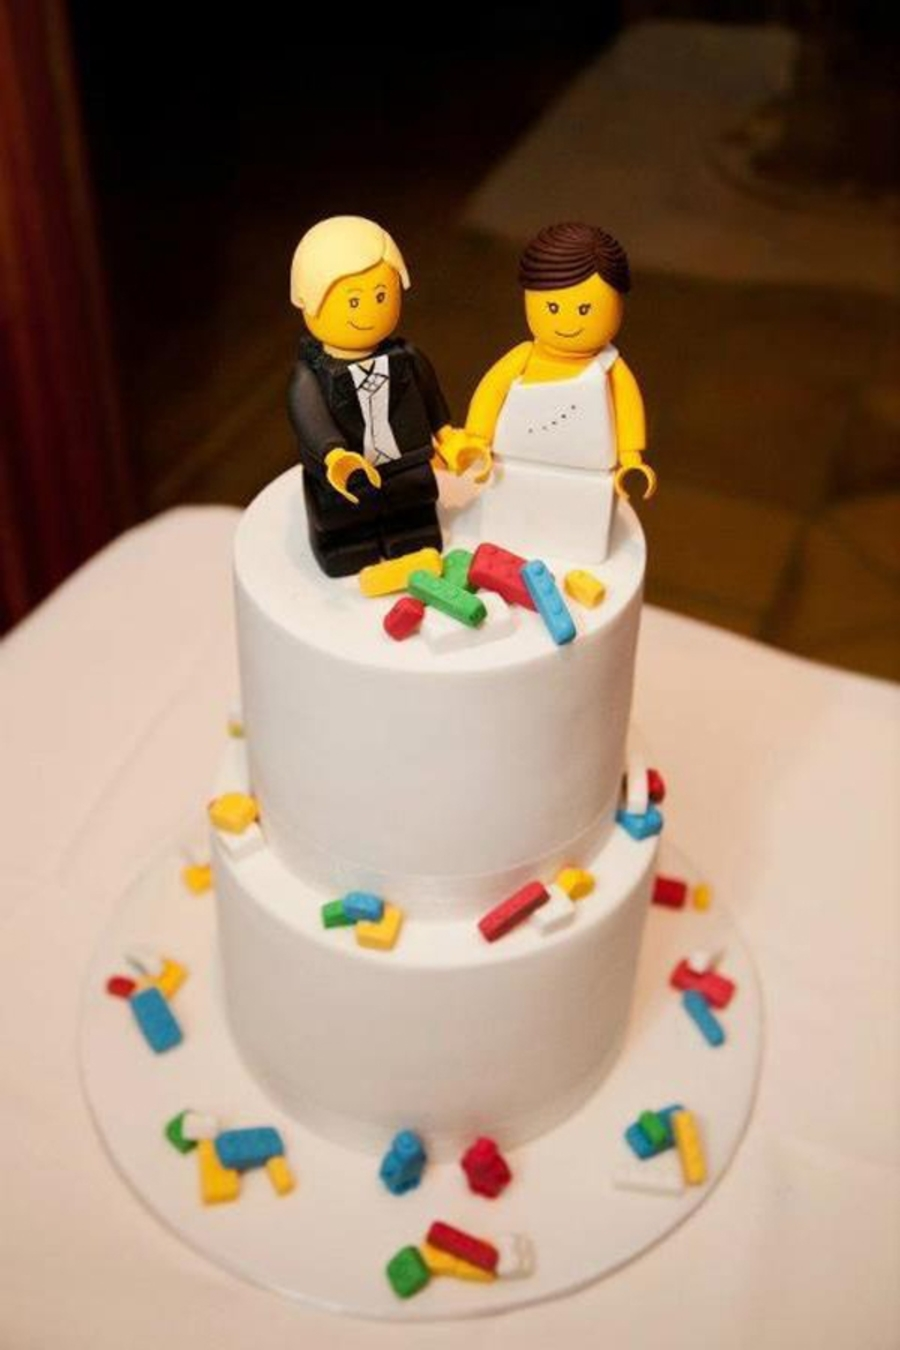 Lego Wedding Cake Tutorial